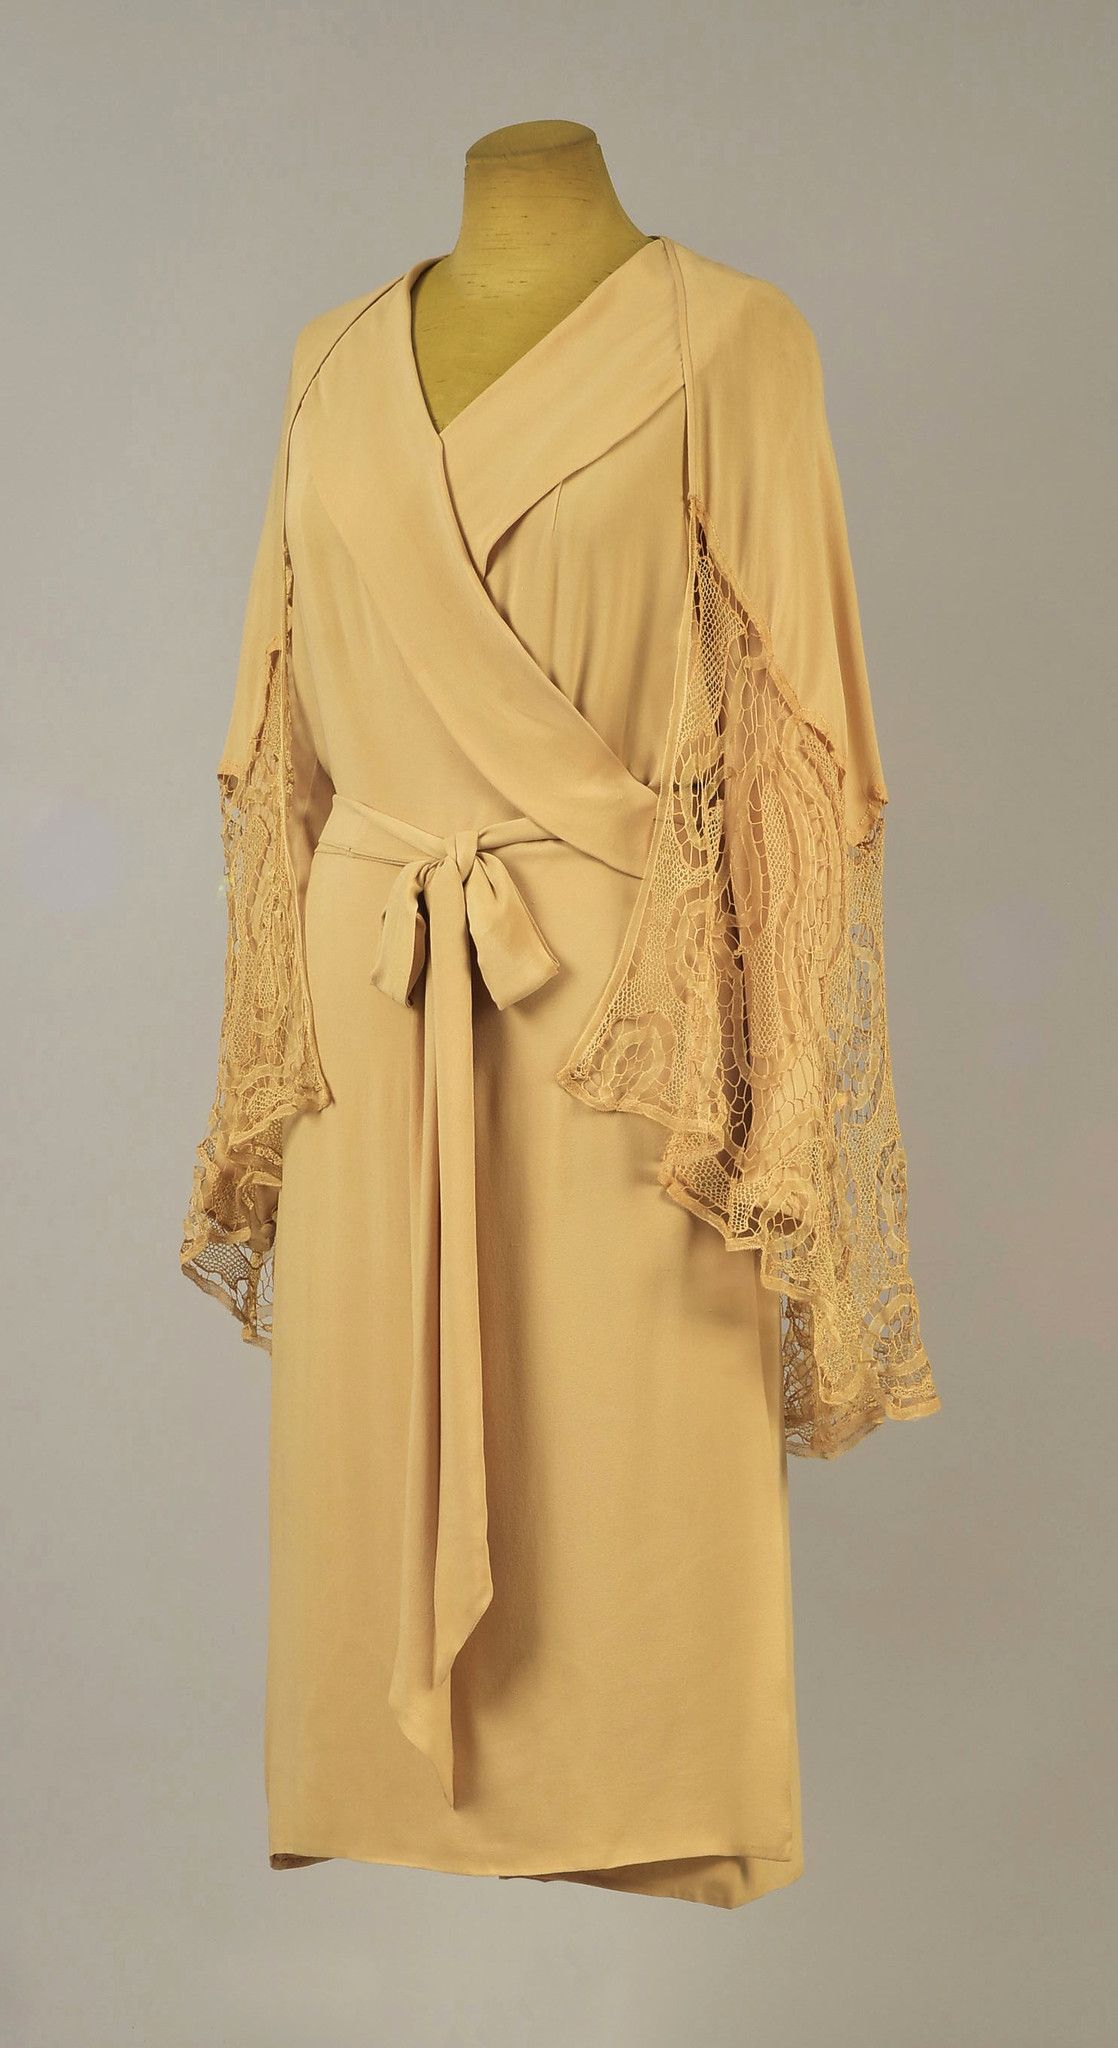 Dress silk attributed to jeanne lanvin designer french s